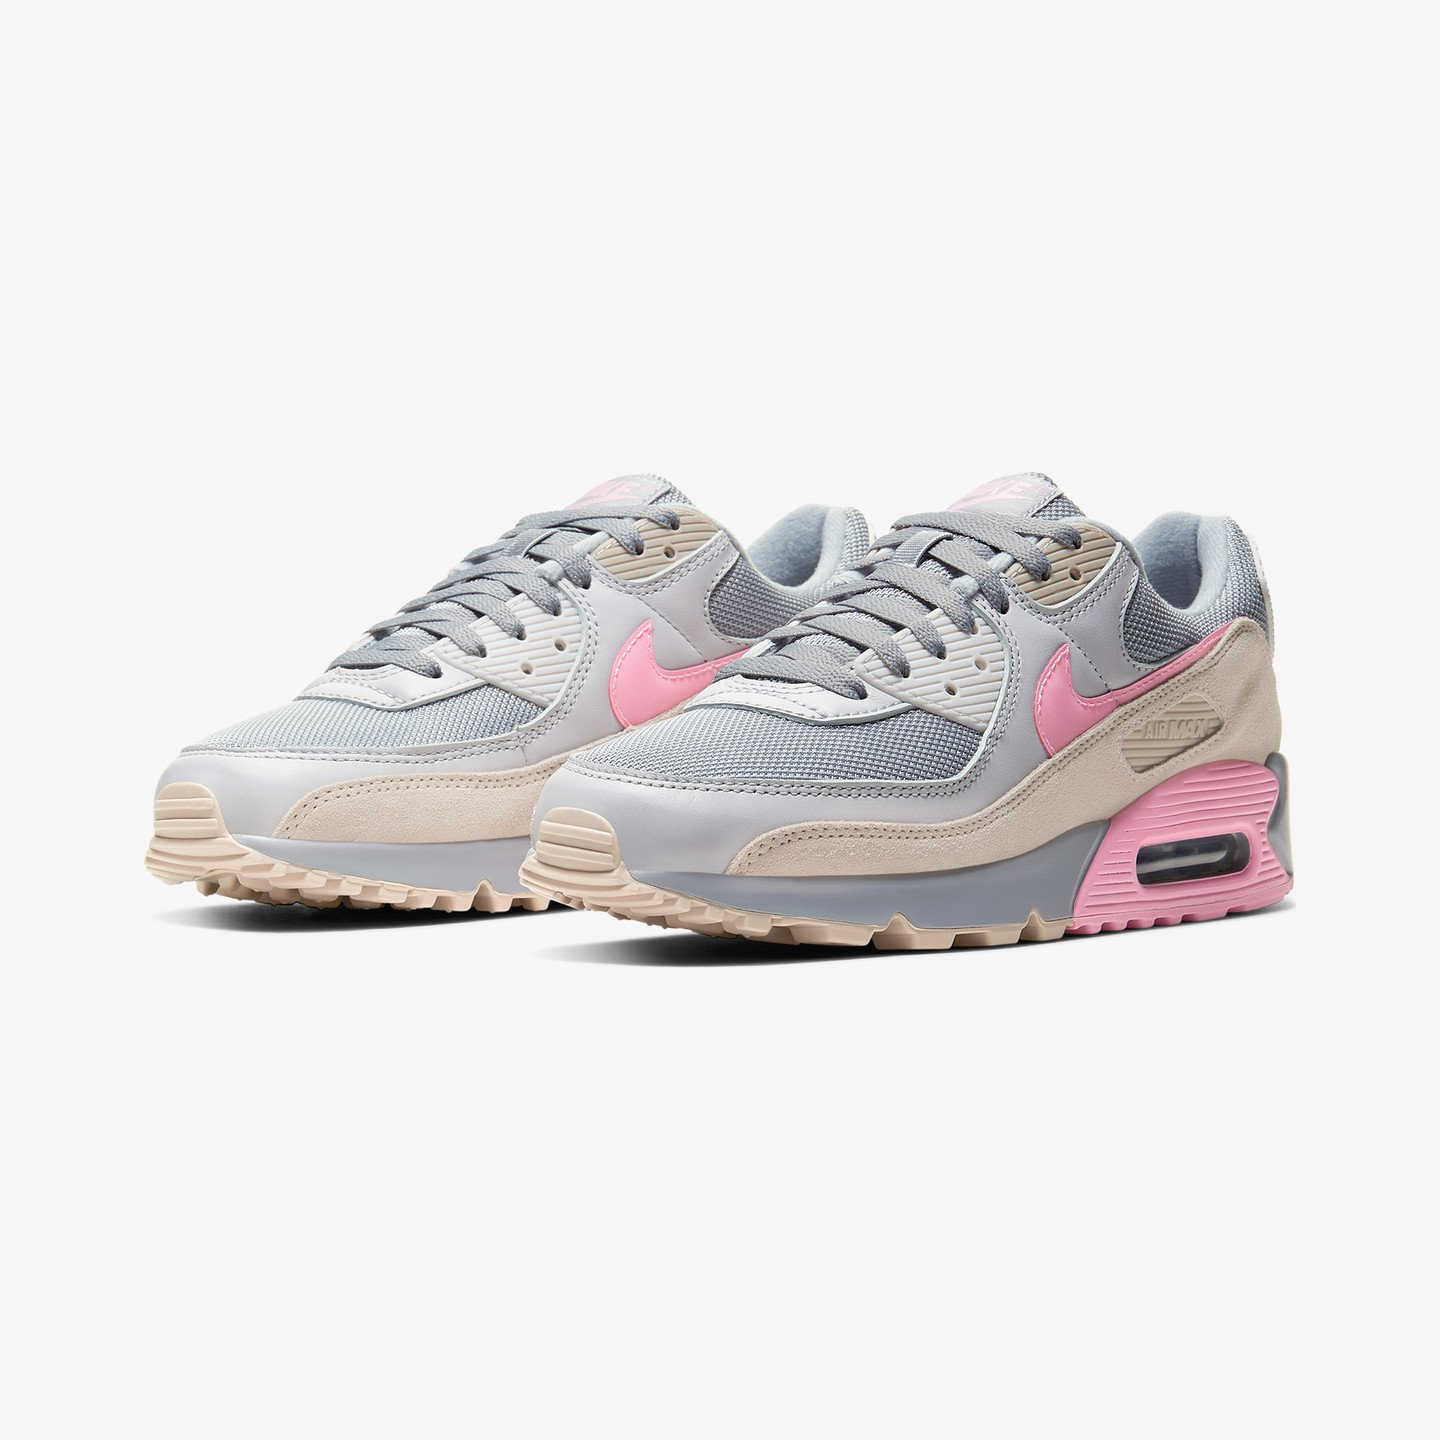 Nike Air Max 90 Vast Grey / Pink / Wolf Grey / String CW7483-001